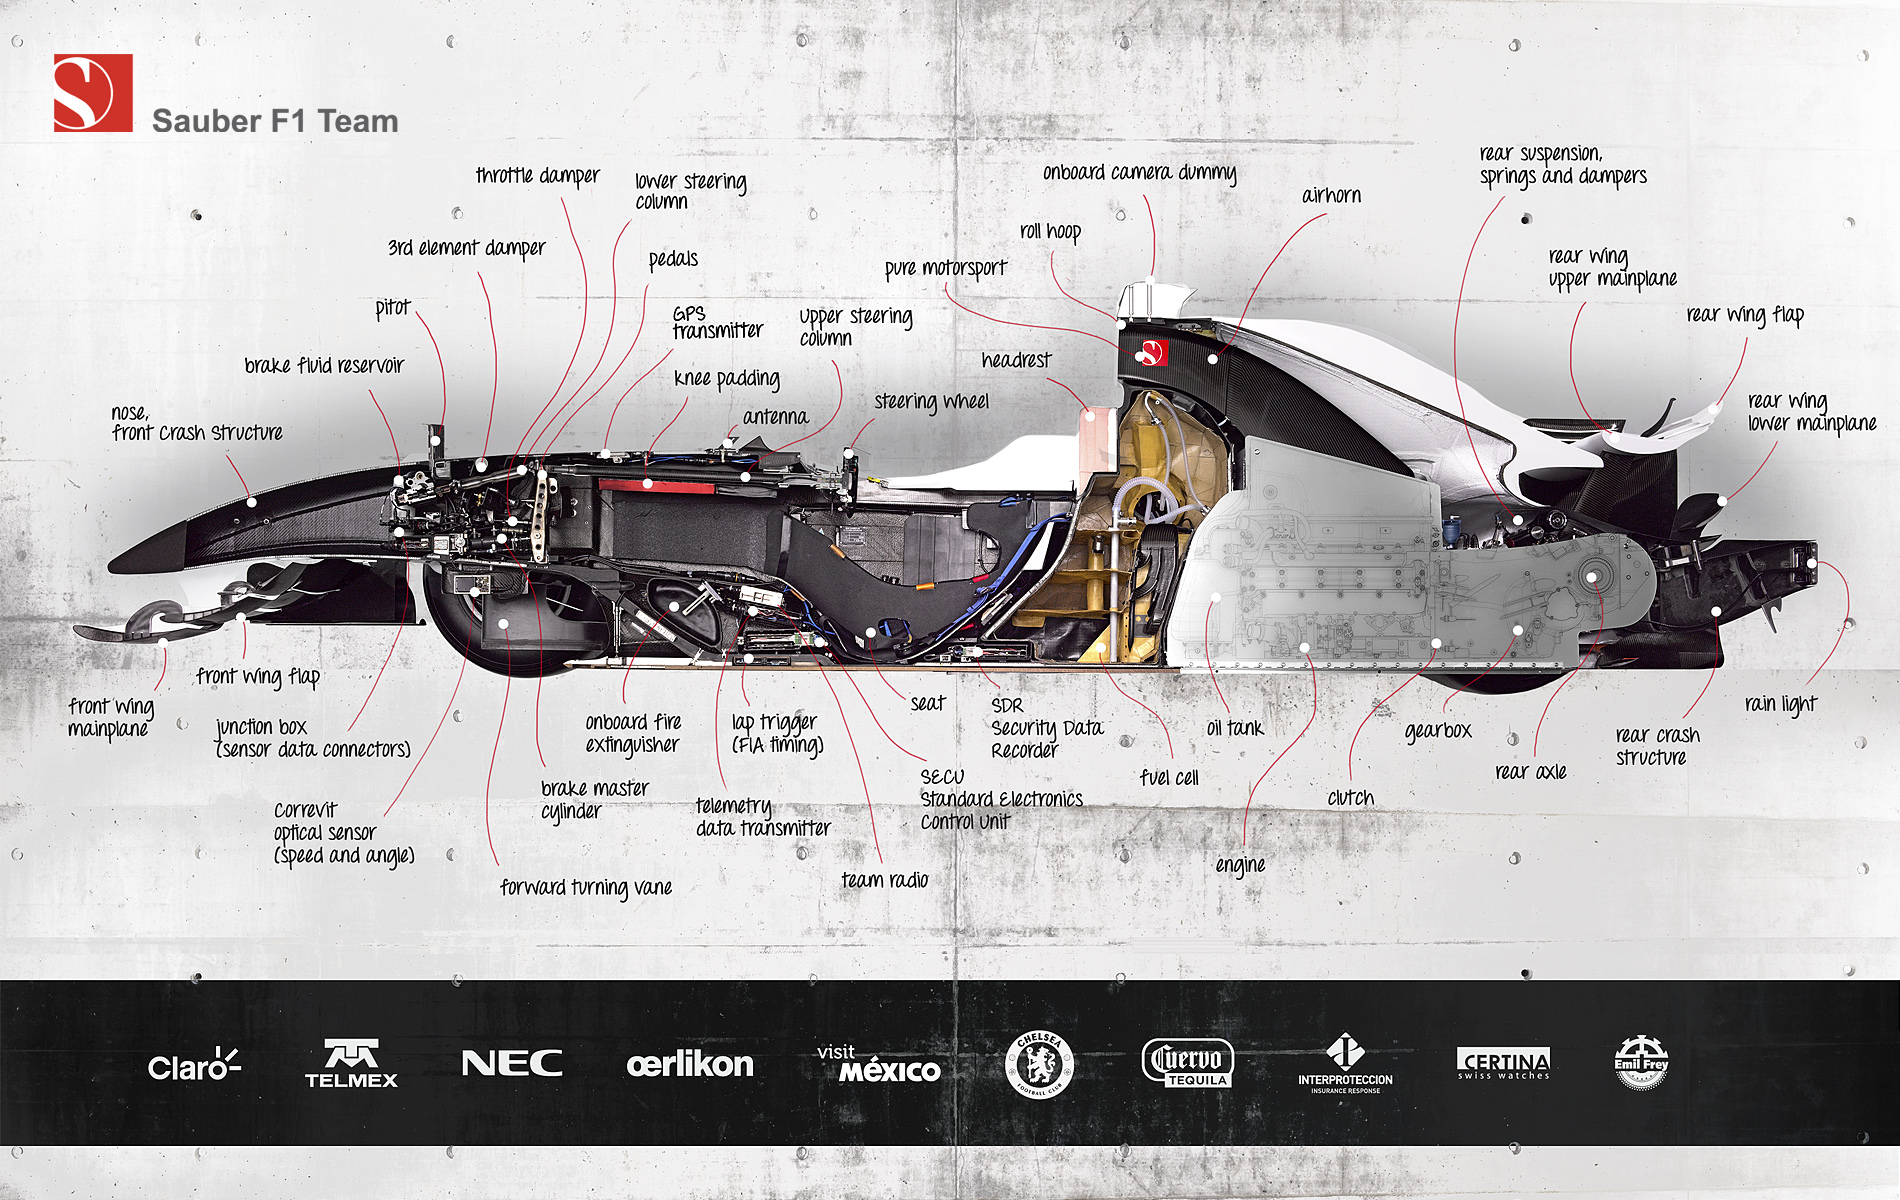 f1 bmw engine diagram sauber f1 cutaway image: all the fastidious details 1998 bmw engine diagram #3